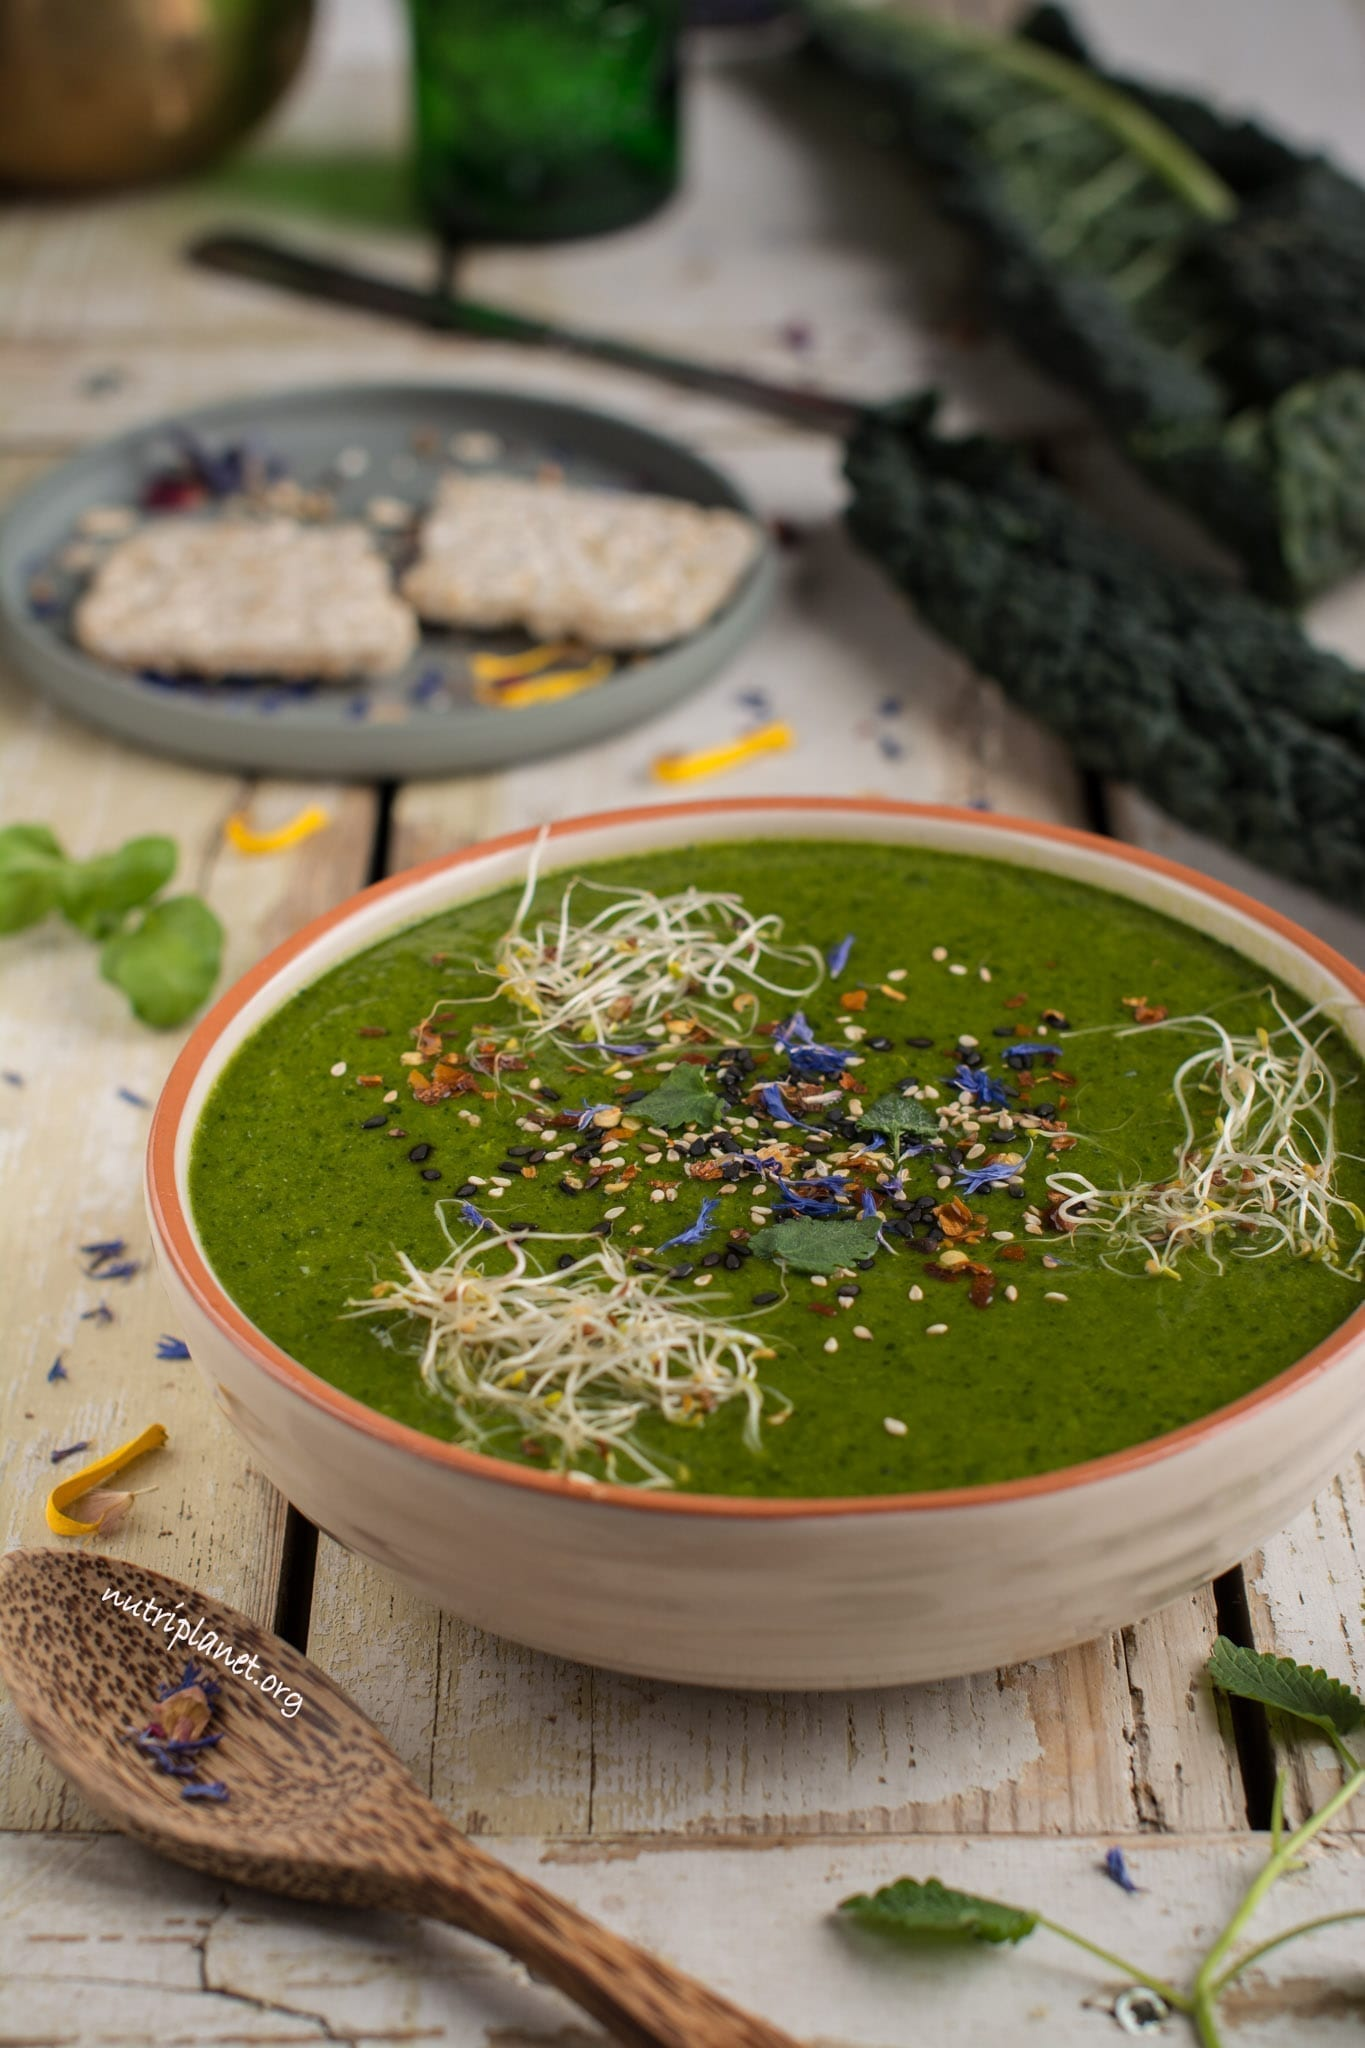 Creamy Vegan Soup with Peas, Broccoli and Kale